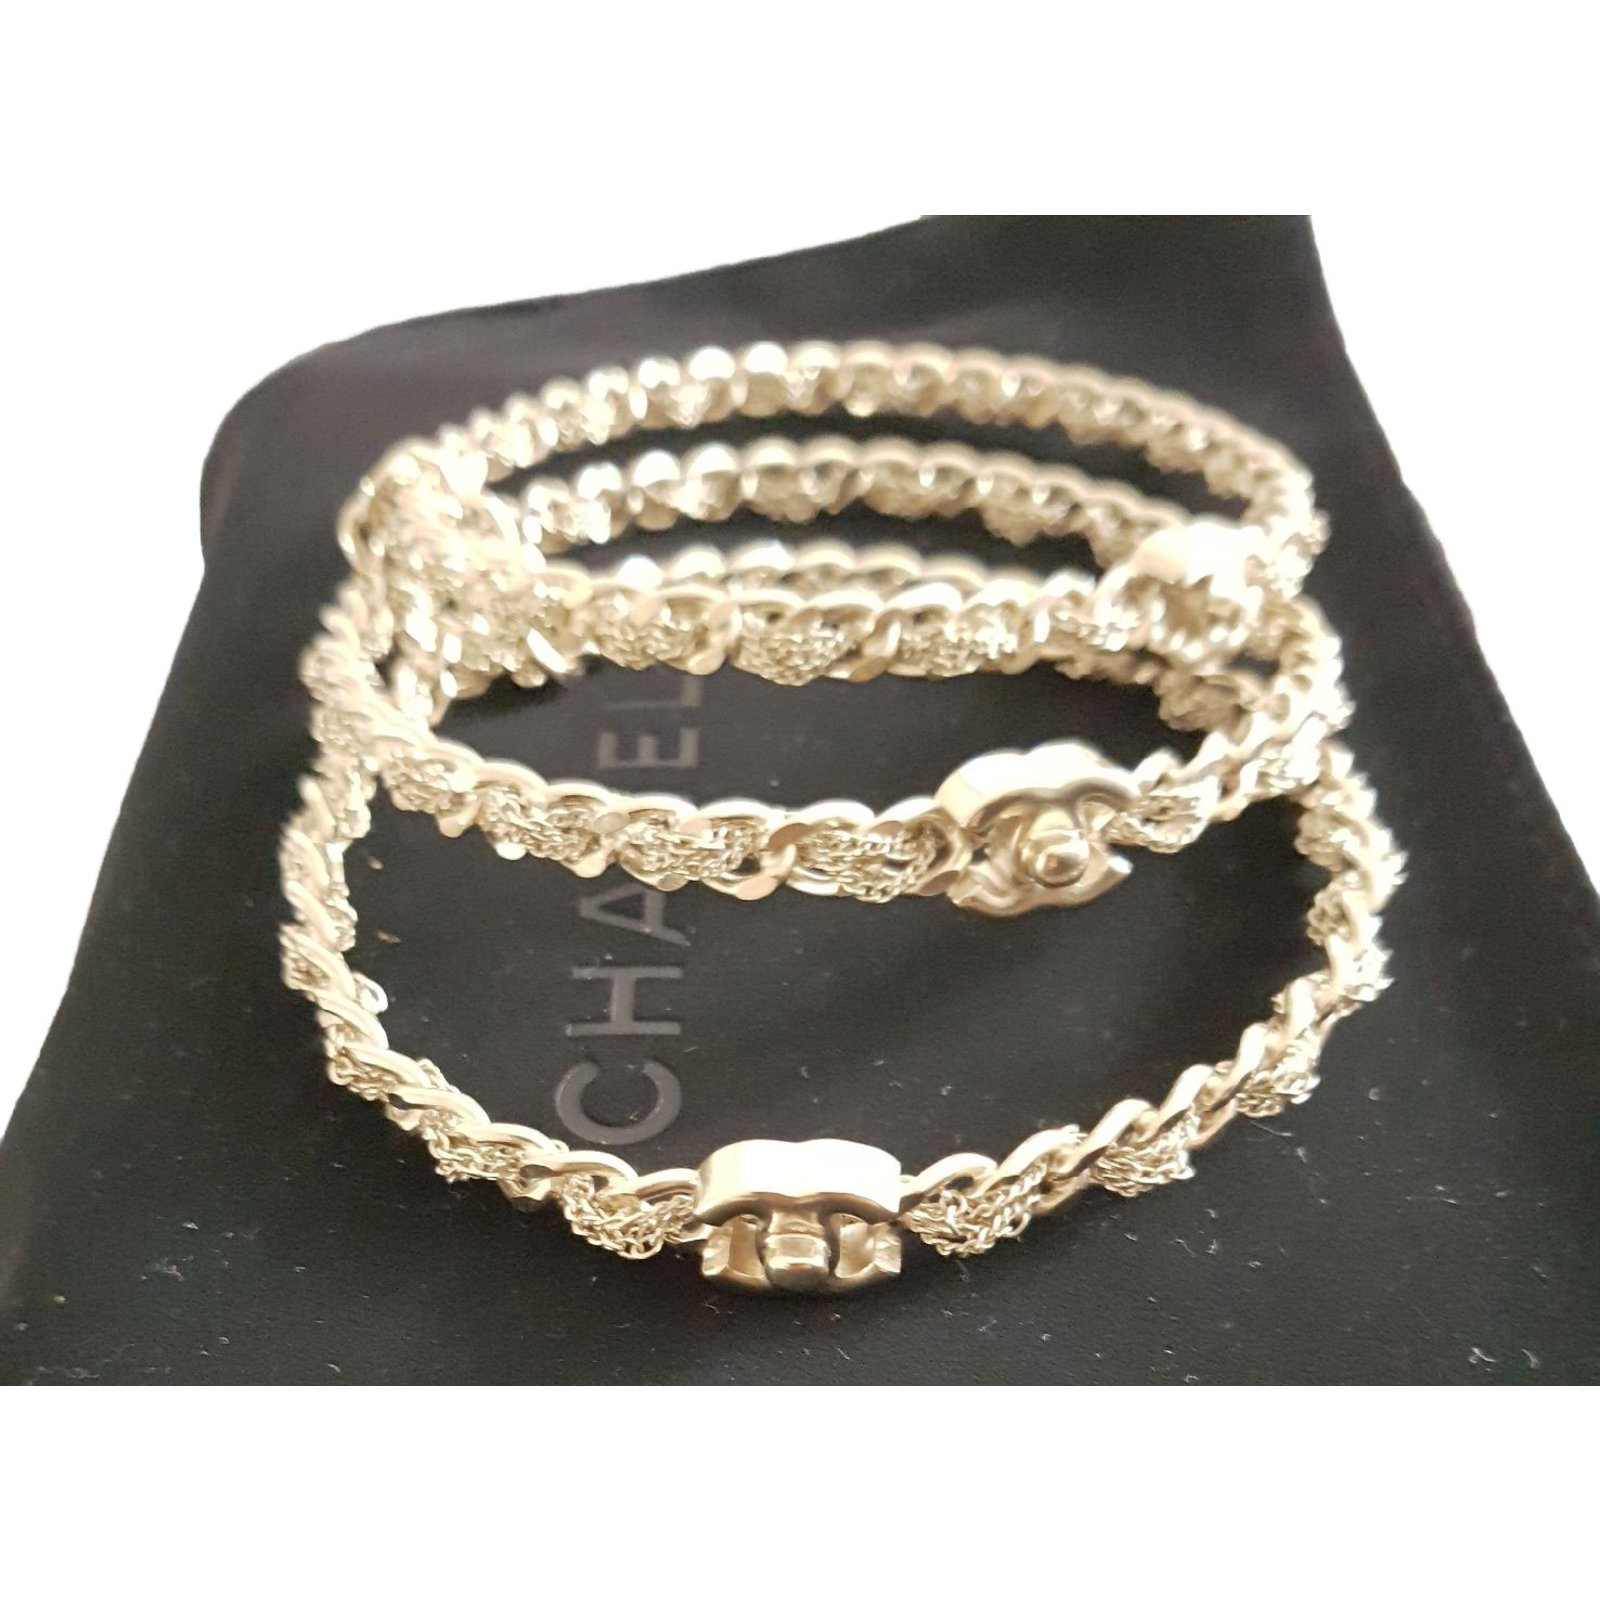 Chanel Bracelets Metal Golden Ref 49406